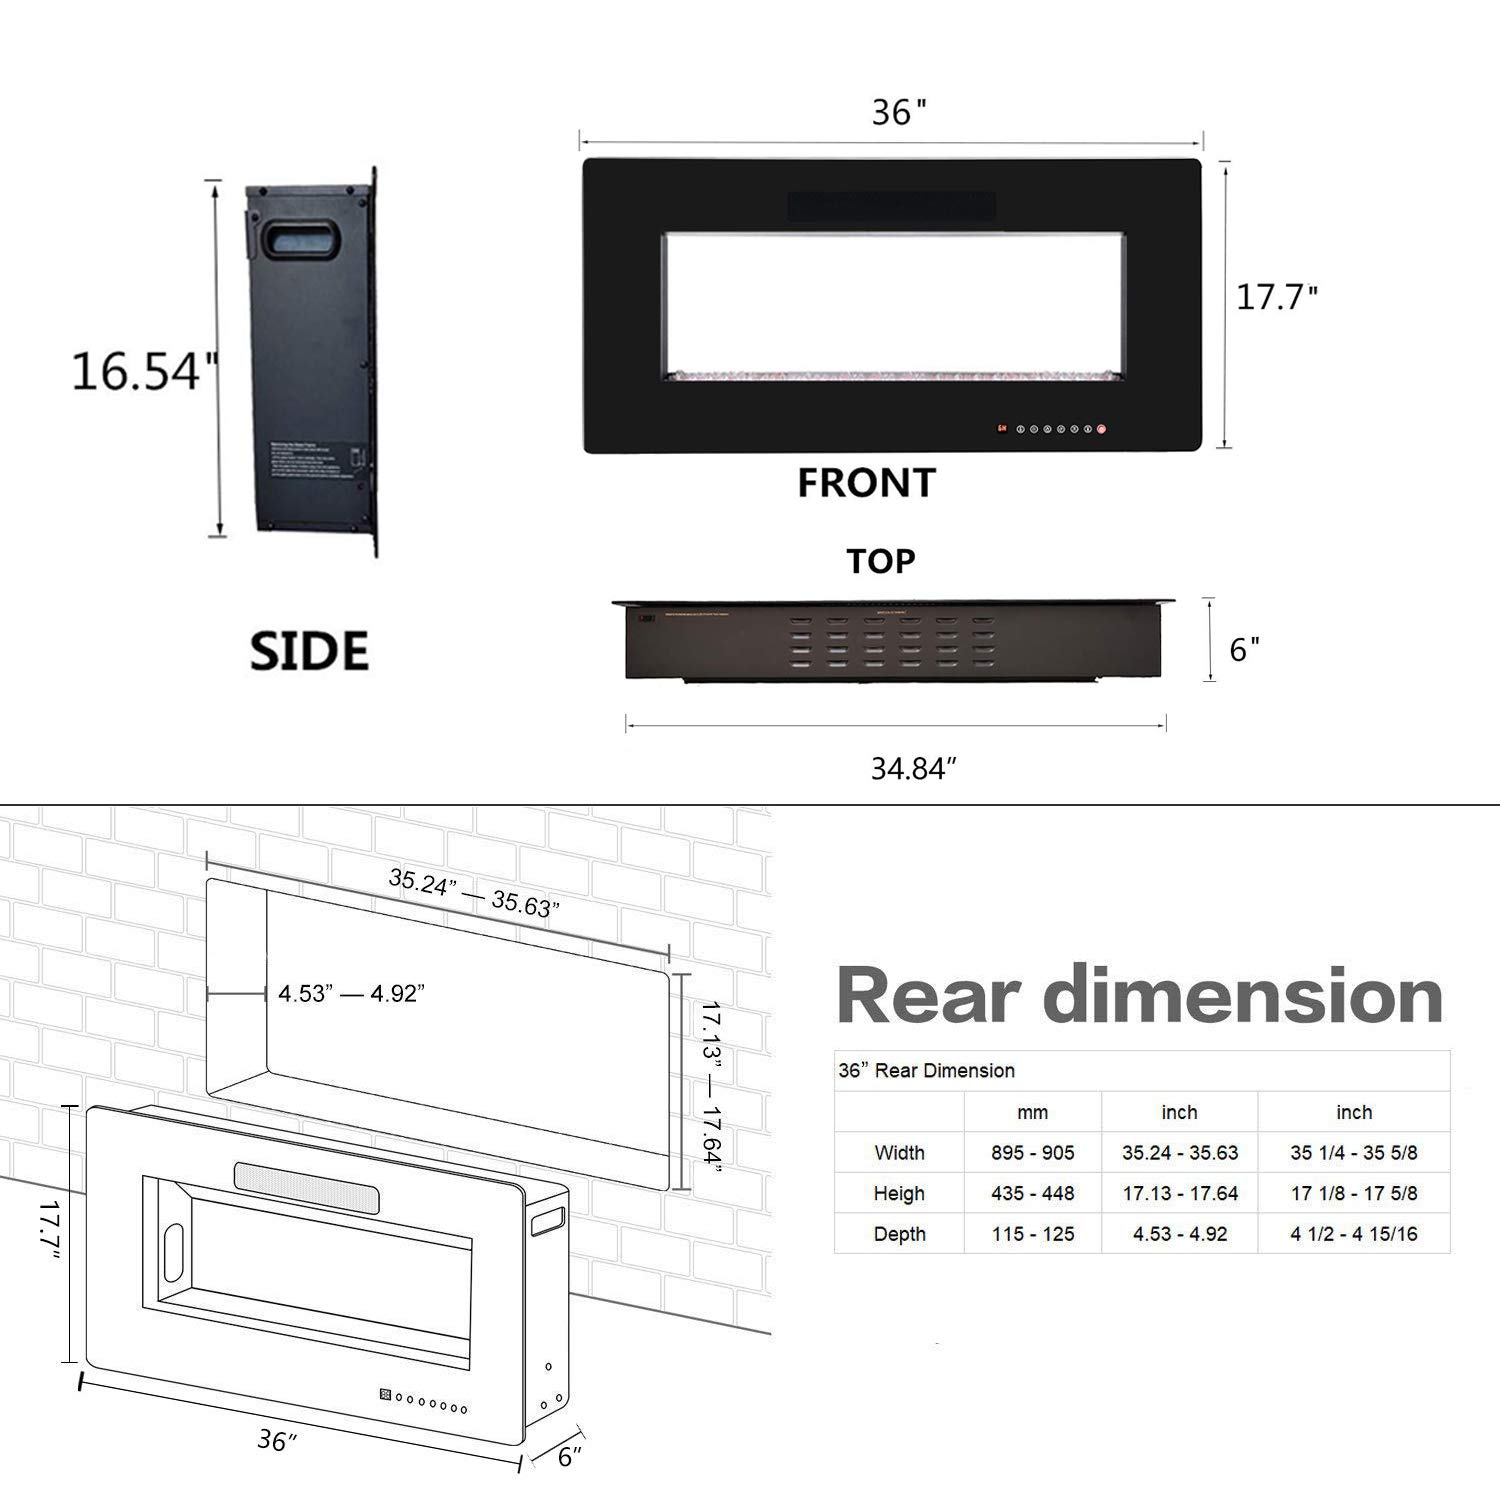 Black /… R.W.FLAME 36 Recessed Electric Fireplace,Wall Mounted Linear Fireplace with Remote Control and Timer,Touch Screen,12 Flame Colors and Speed,1500W